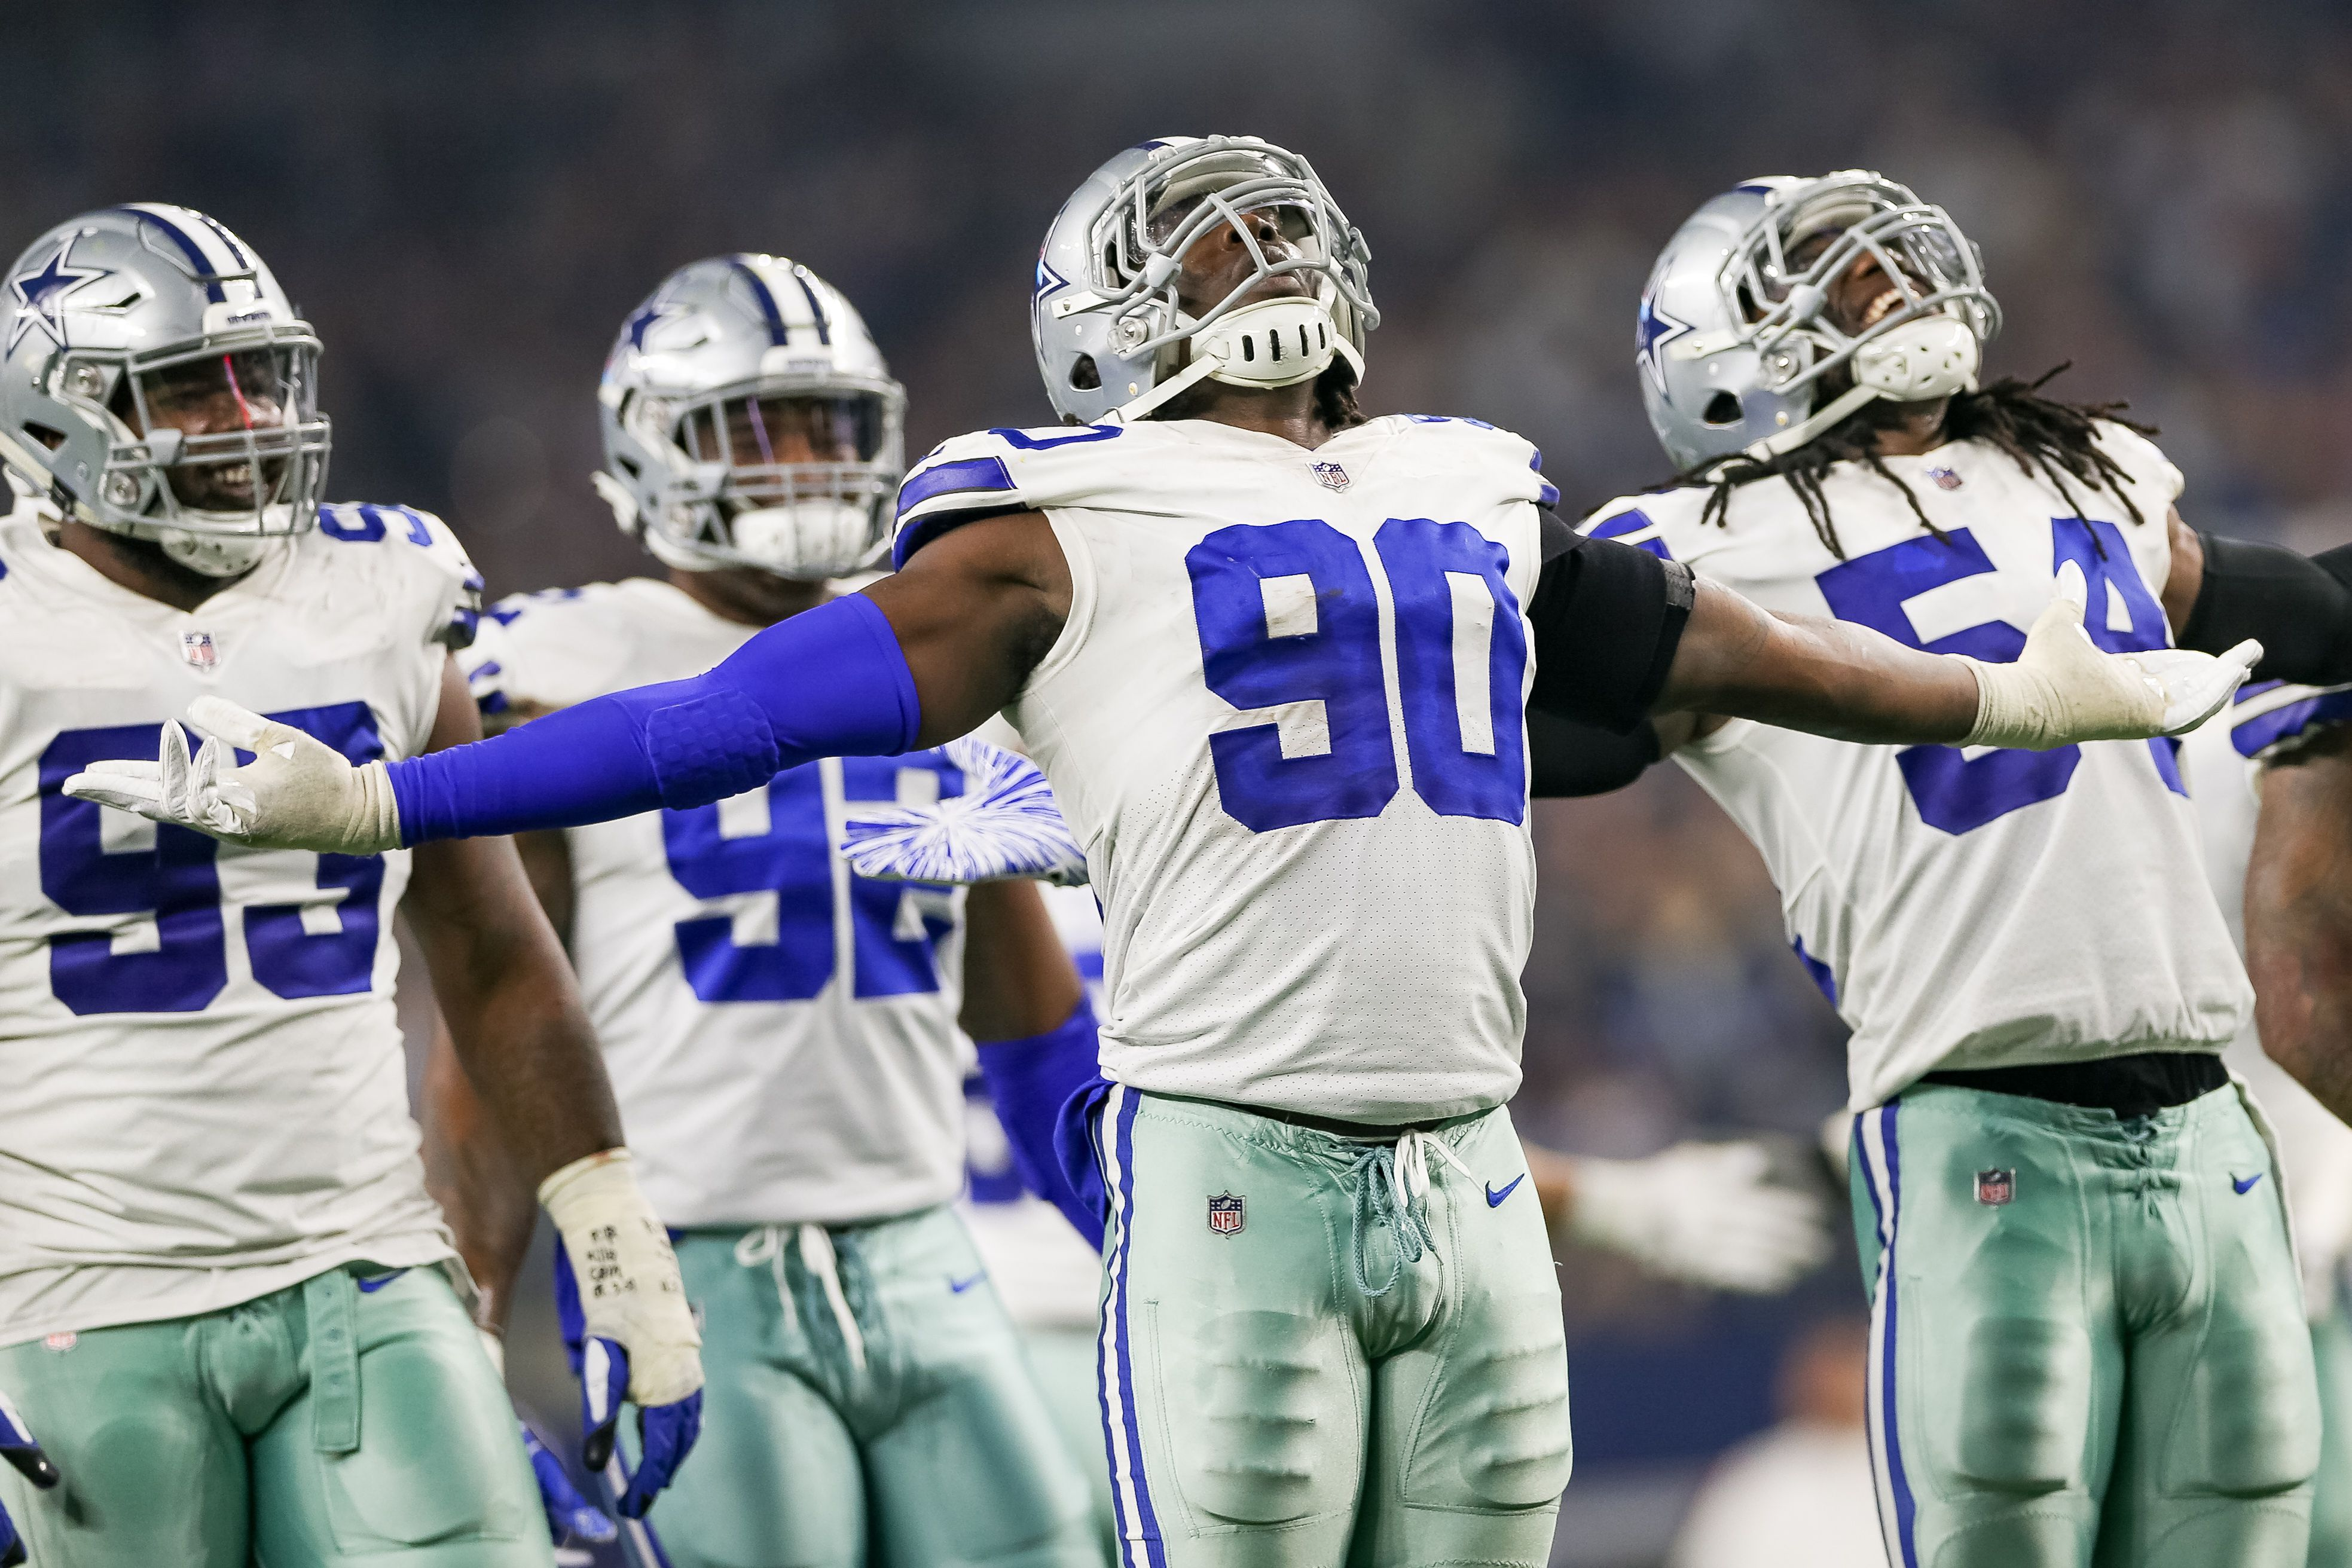 DeMarcus Lawrence sounds ready for MMA fight vs Saints 3934x2623